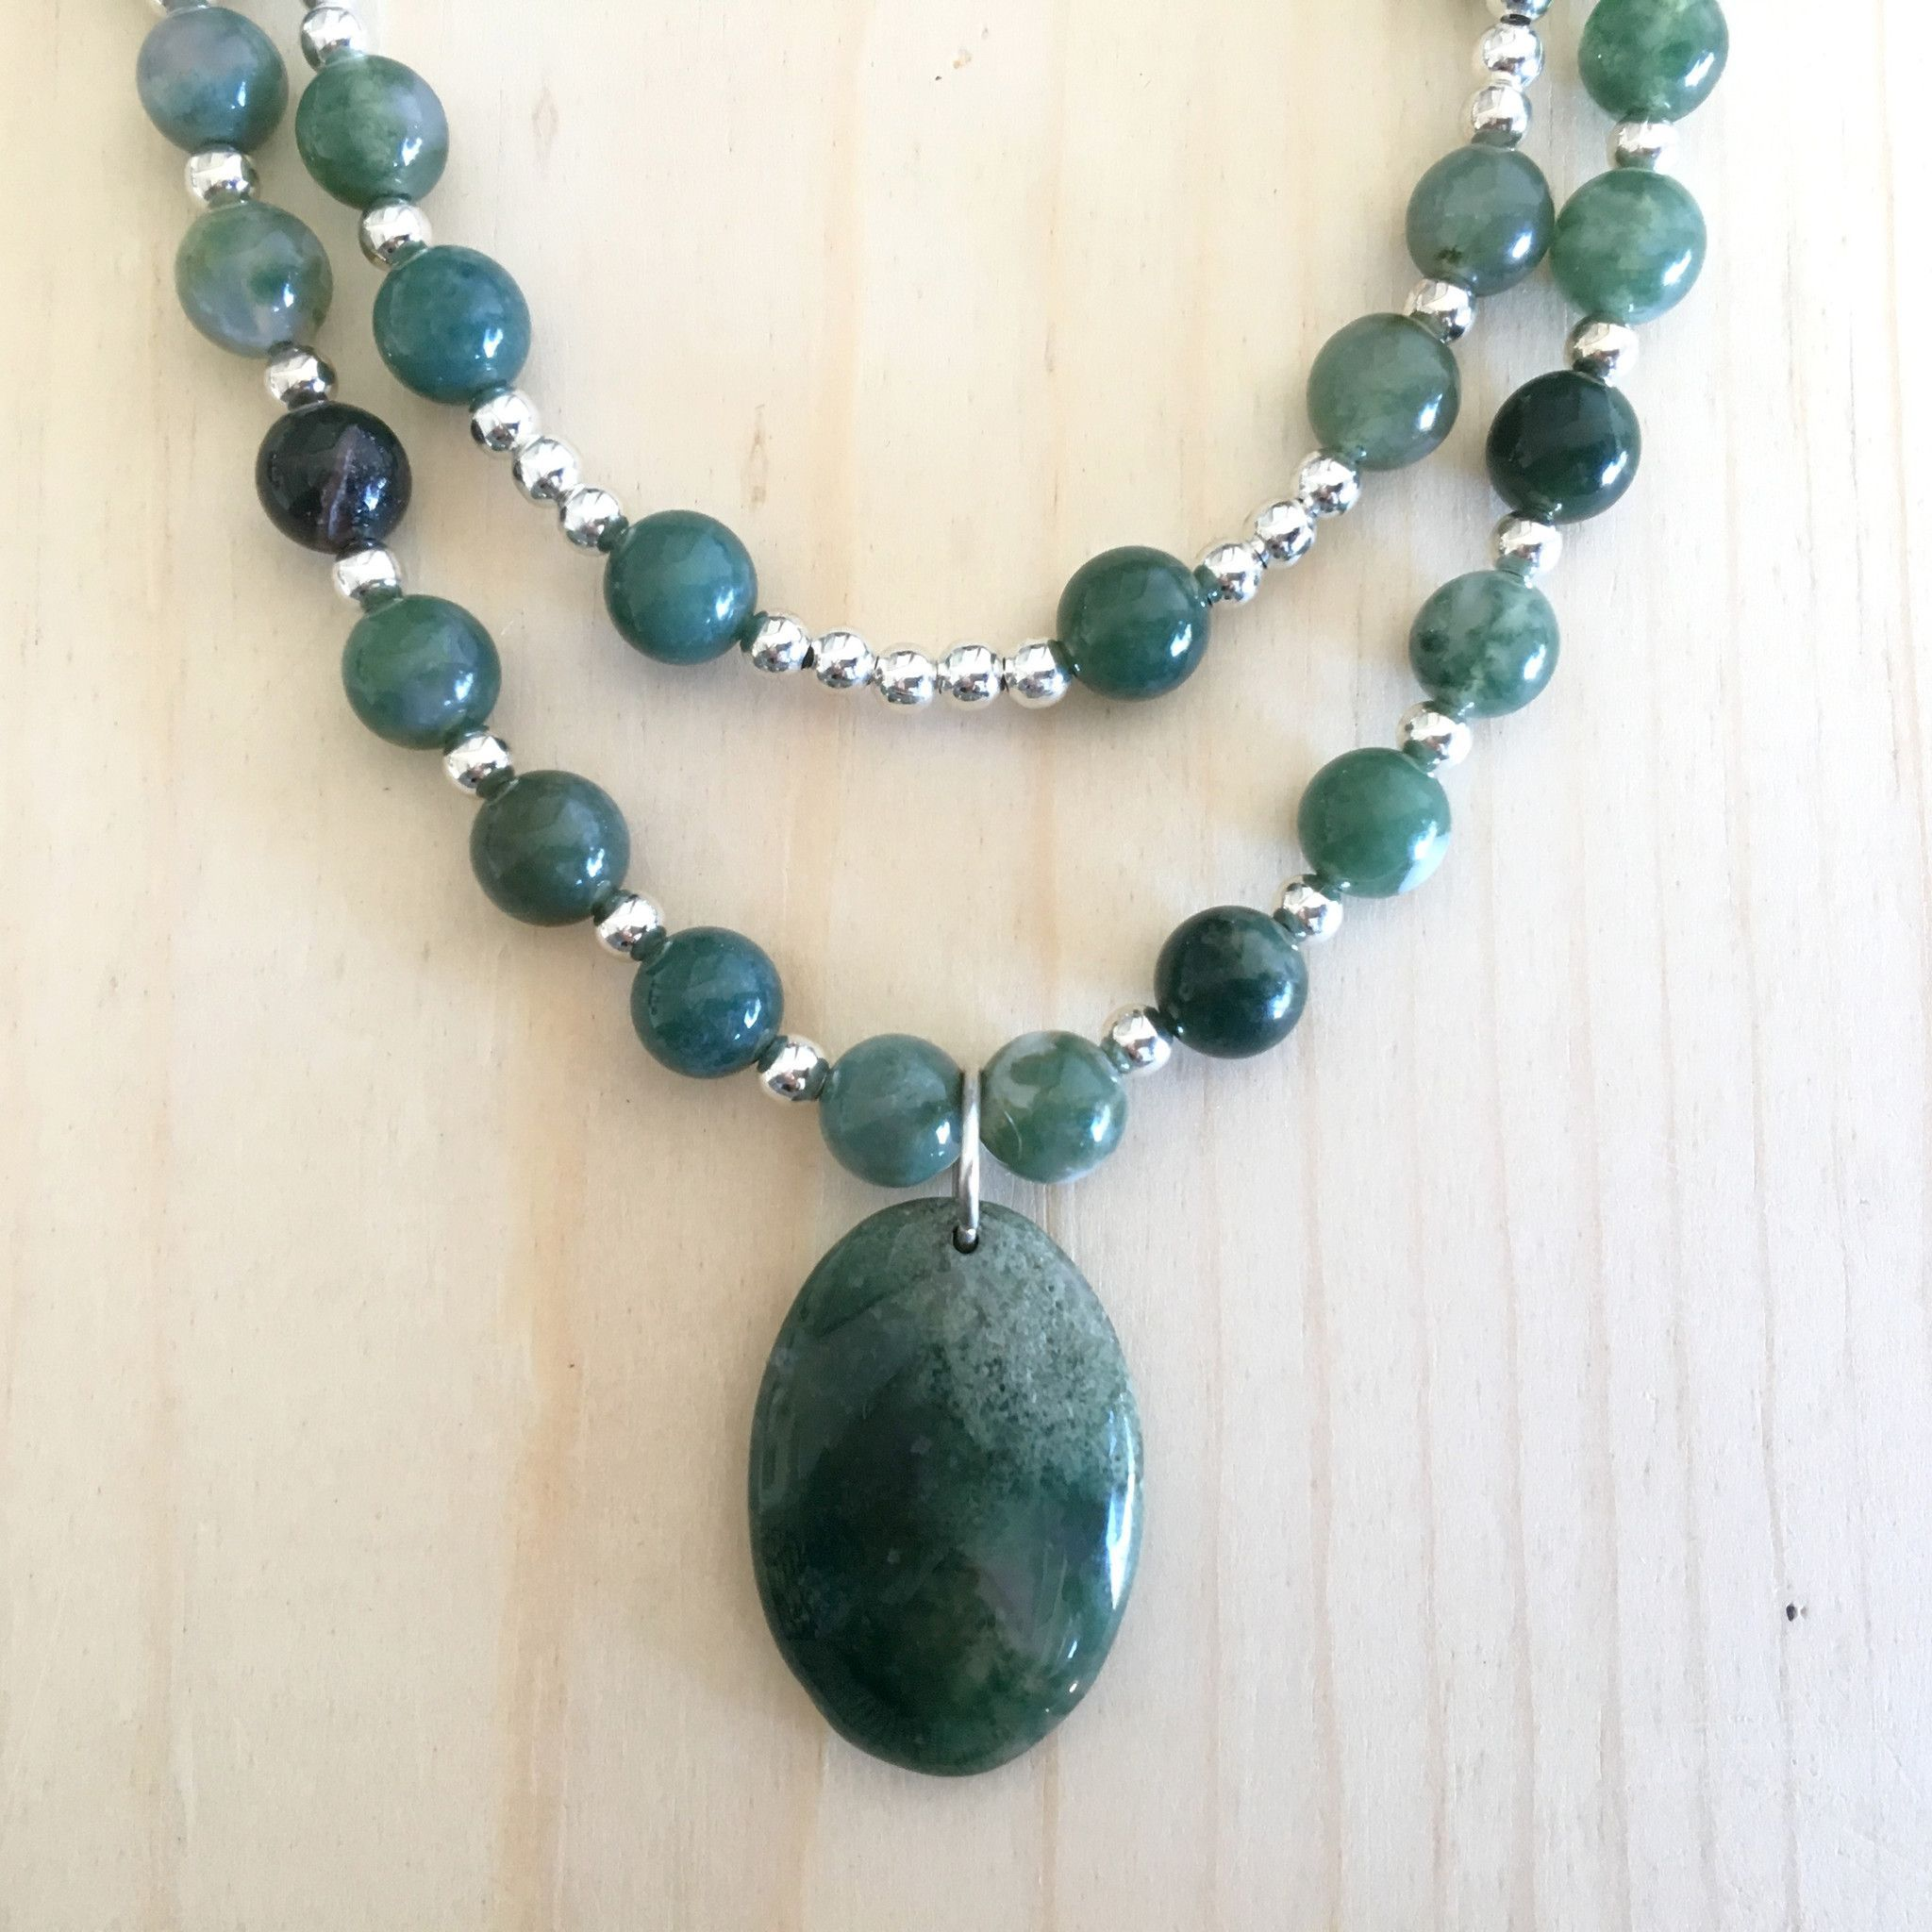 amulet jai natural pa pentagon matte necklace products stones grey with thai moss agate semi hand style precious knotted authentic paragon